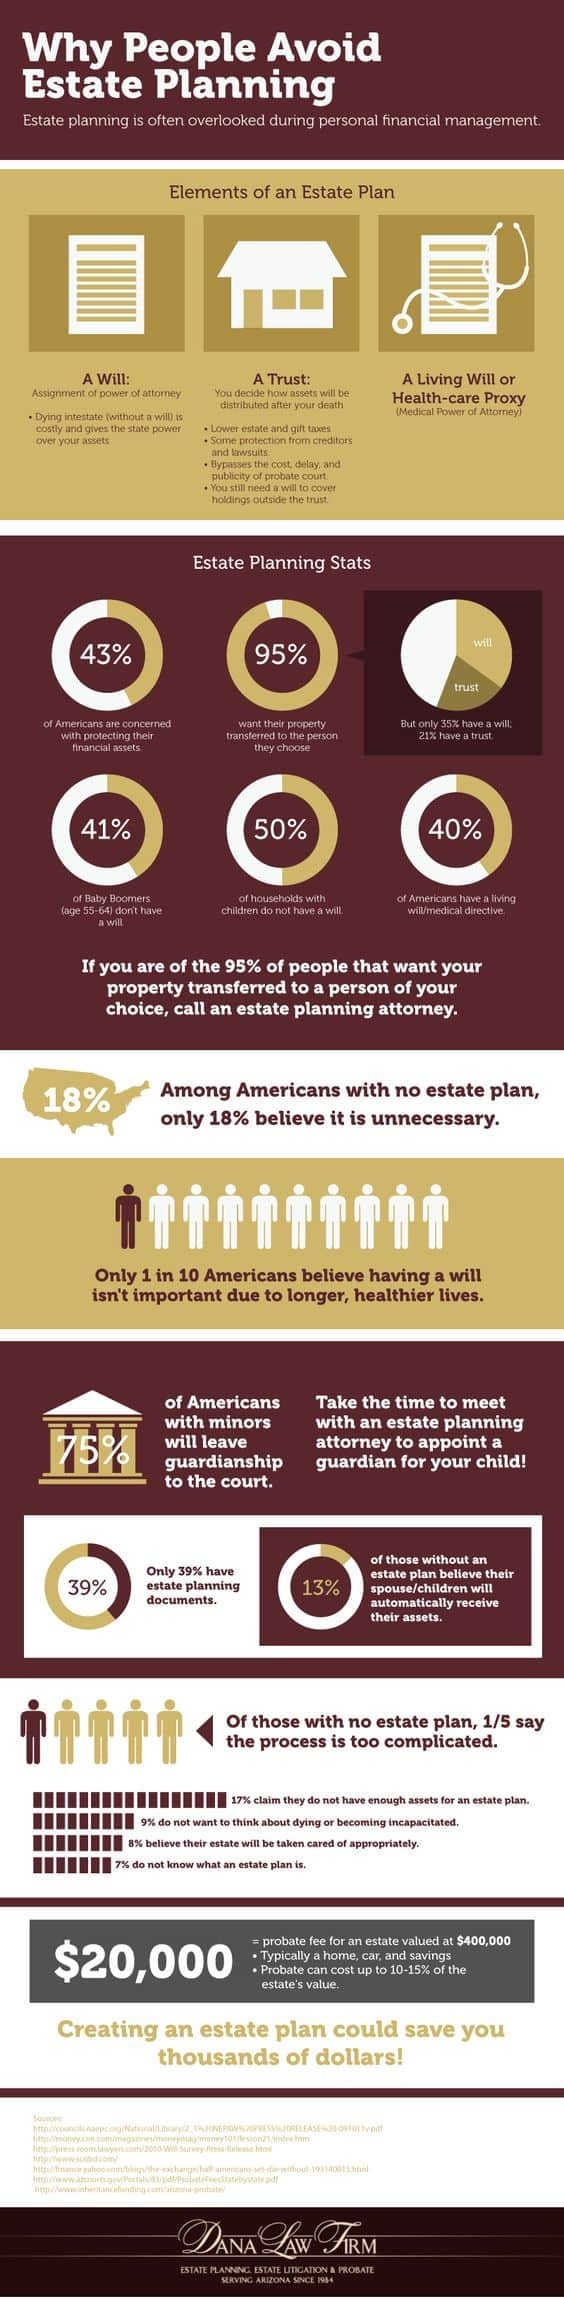 Why People Avoid Estate Planning